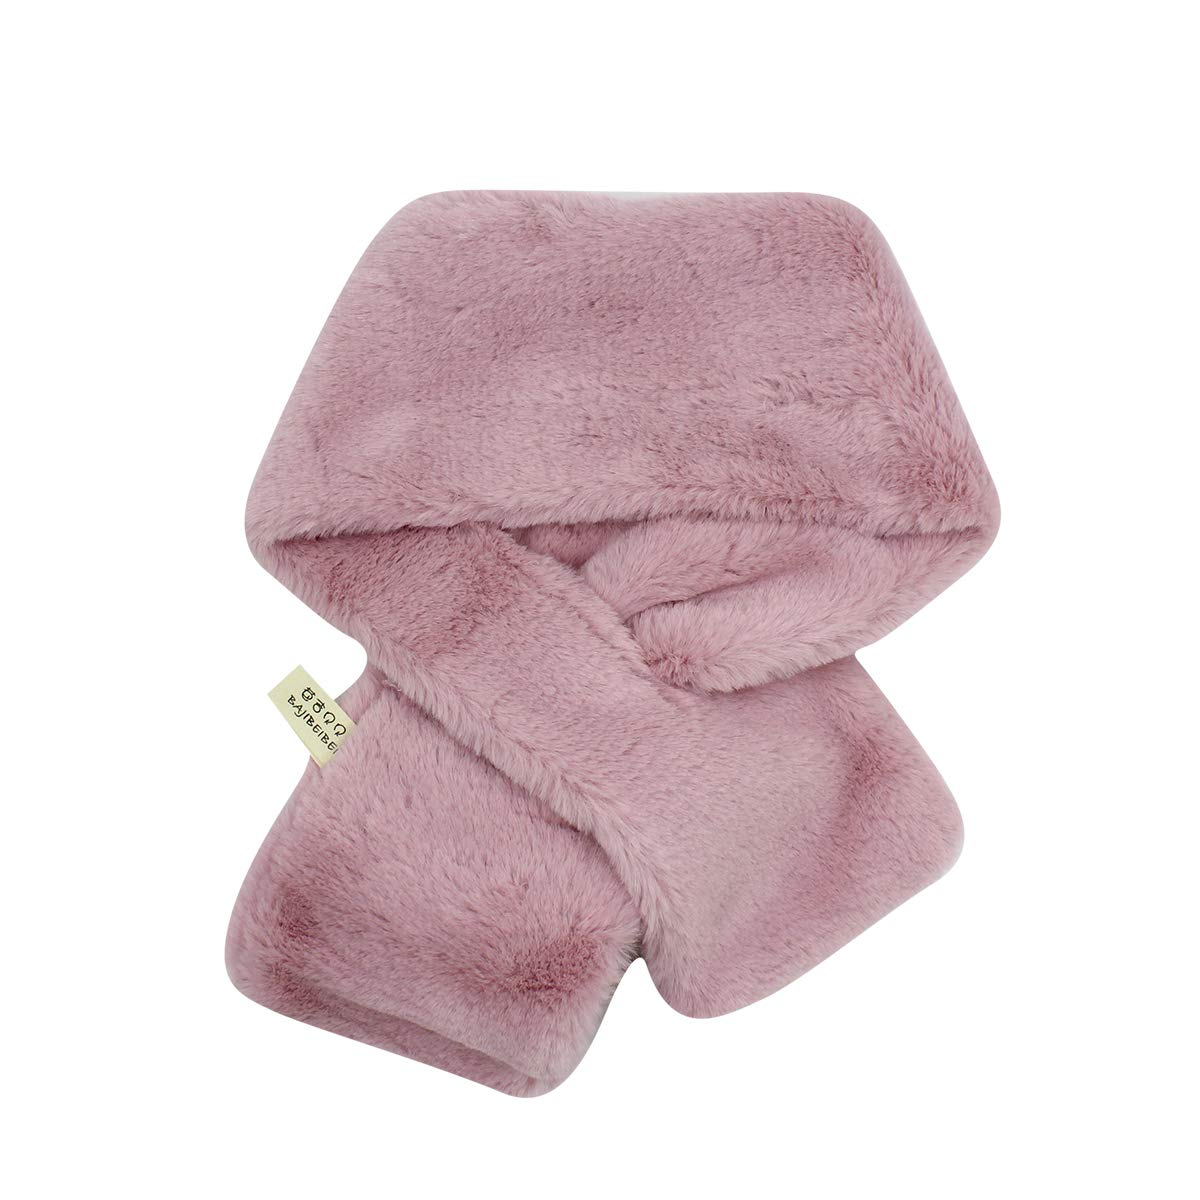 Plush Scarf Fashion Solid Color Warm Scarves Thick Shawl Warp with Cute Rabbit for Kids Toddler Girls